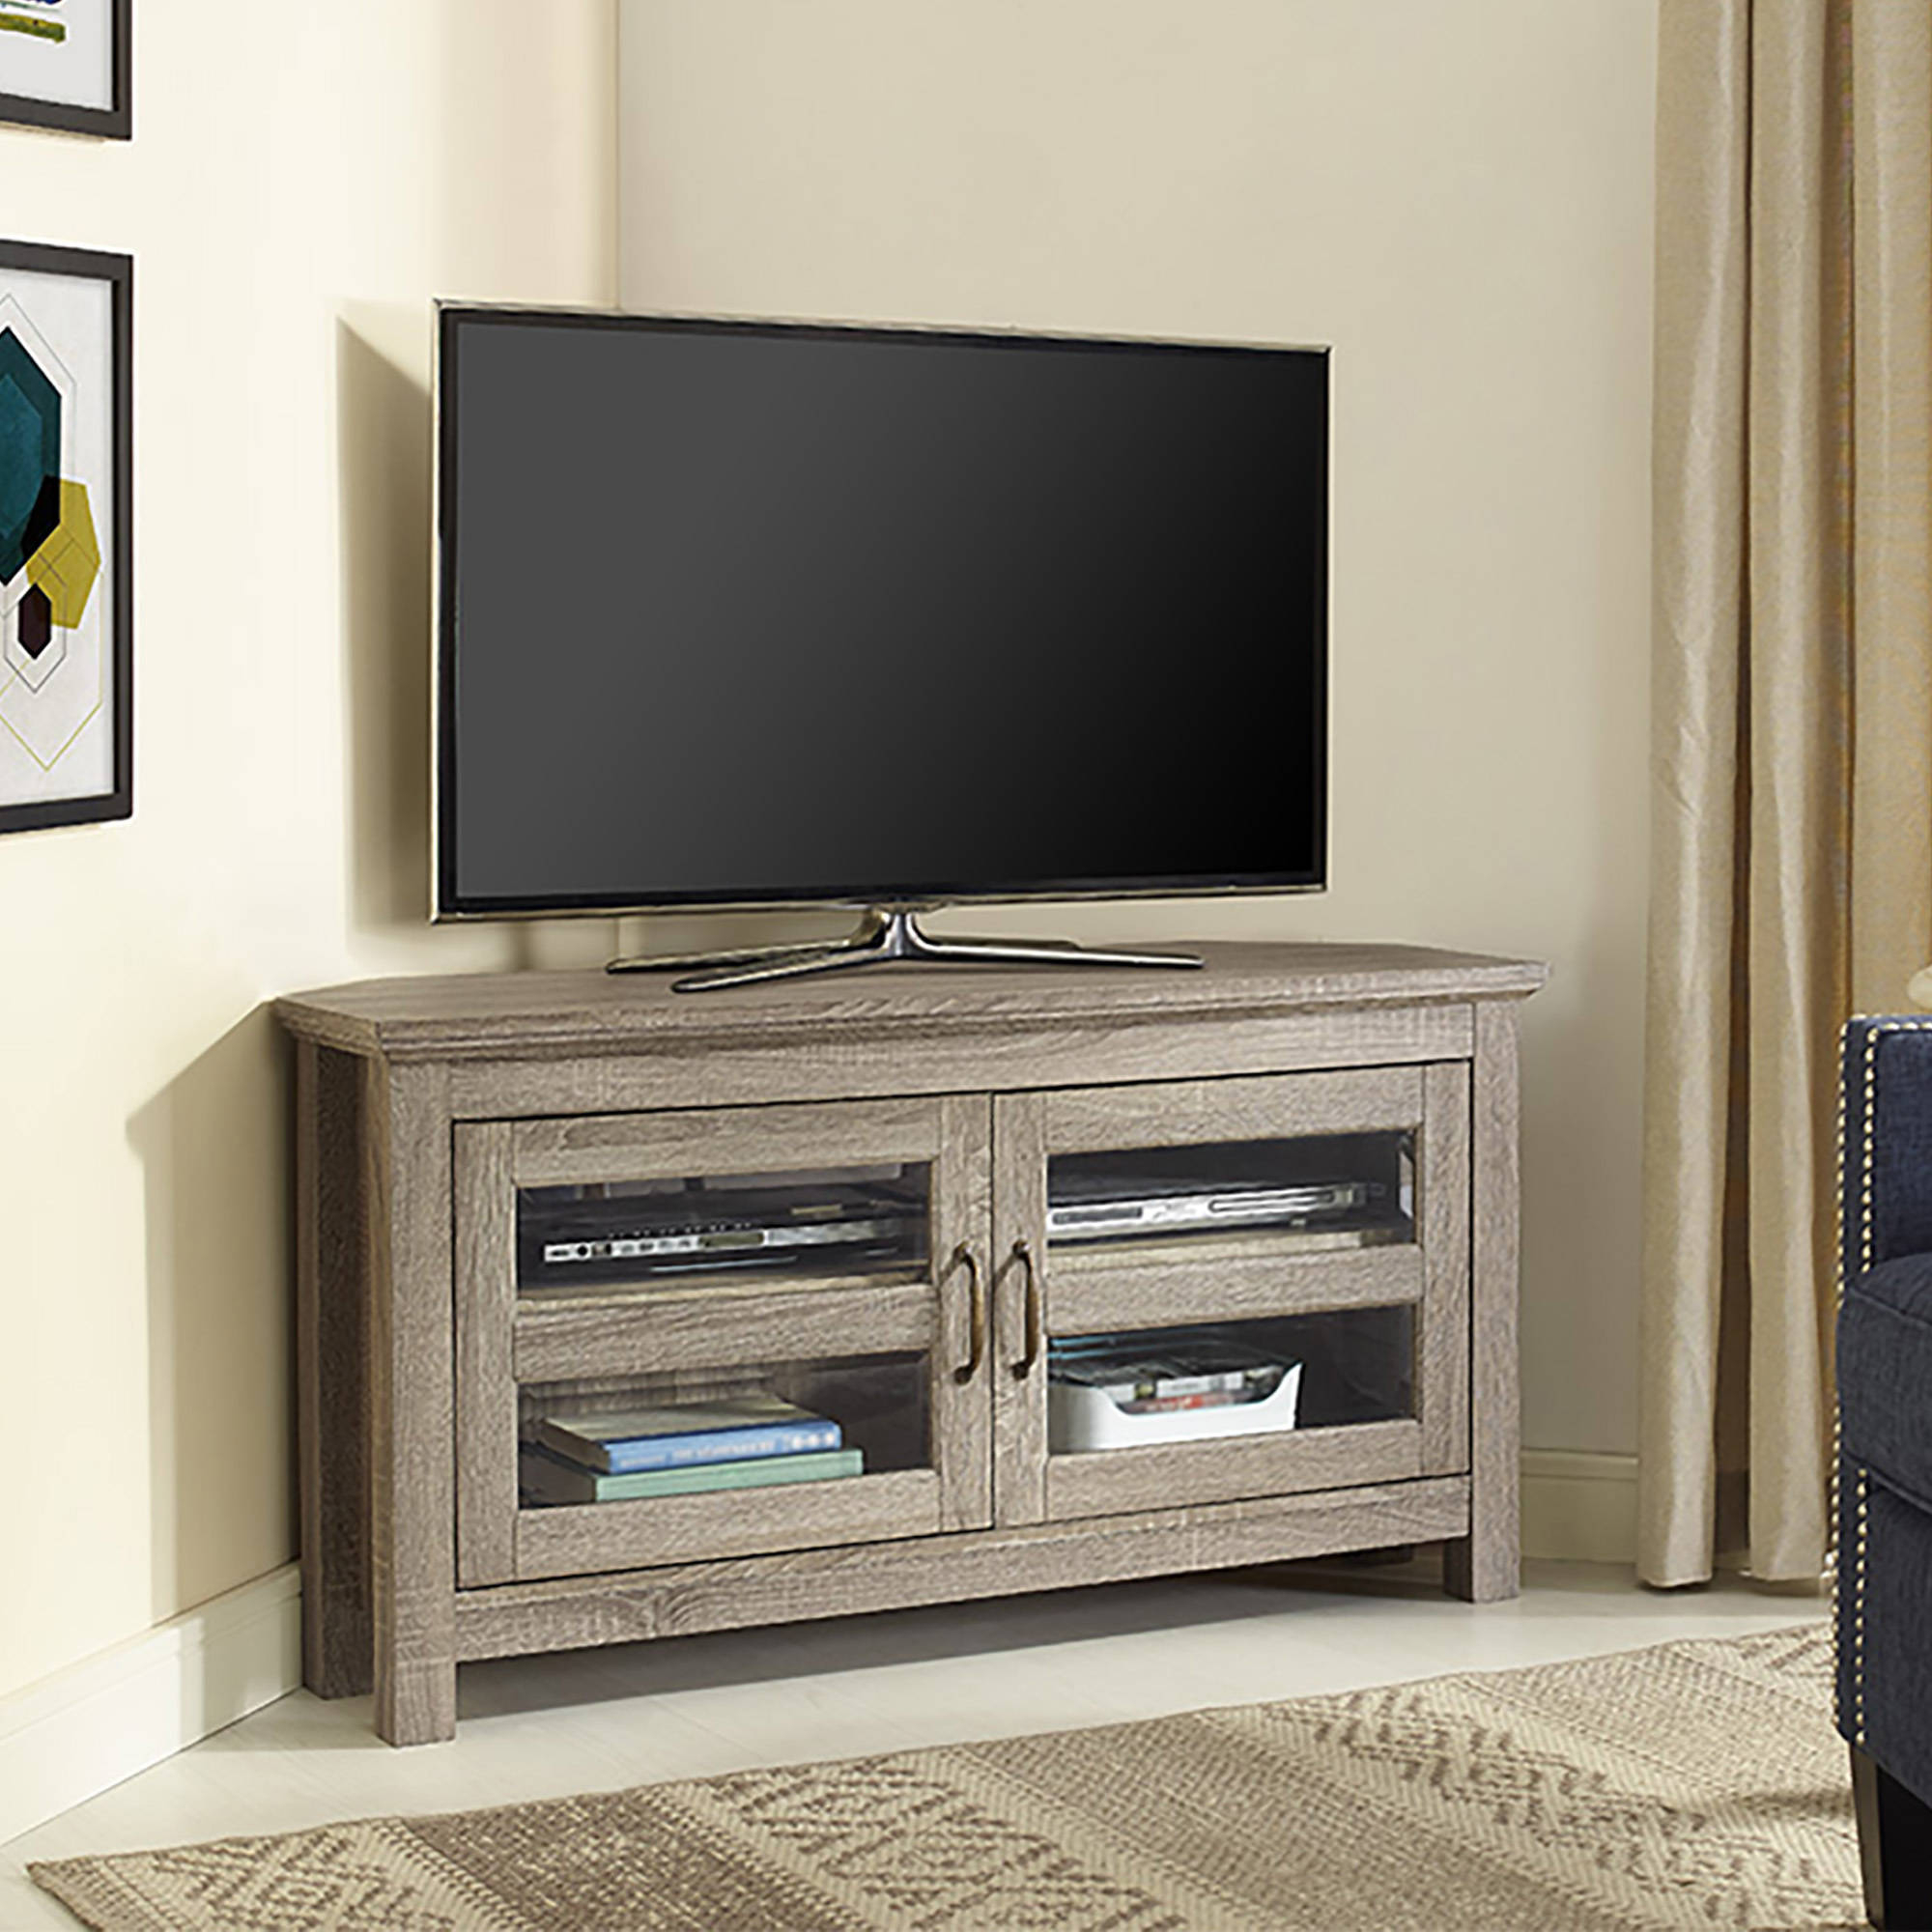 Best And Newest Tv Stands For Corner Pertaining To Tv Stand With Mount Corner Stands Wood Armoire Flat Panel Fireplace (View 18 of 20)